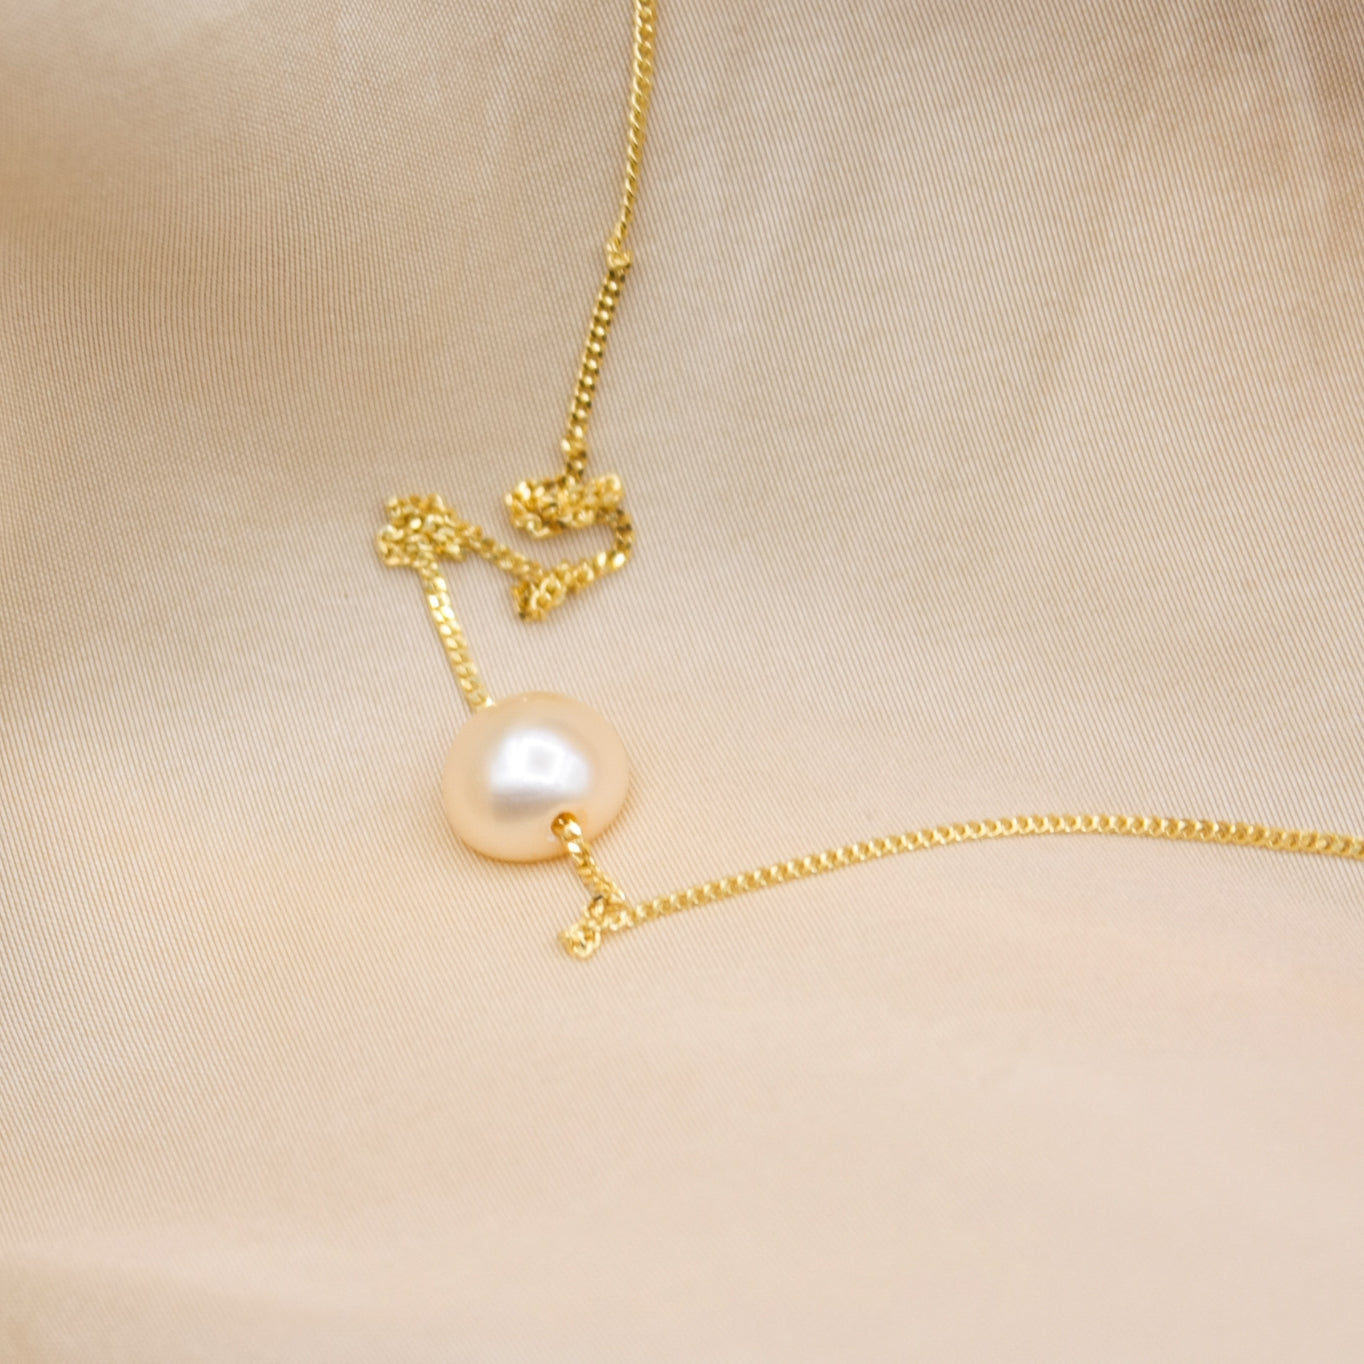 Dainty Peach Pearl Necklace Lorne Necklace - White Label Project